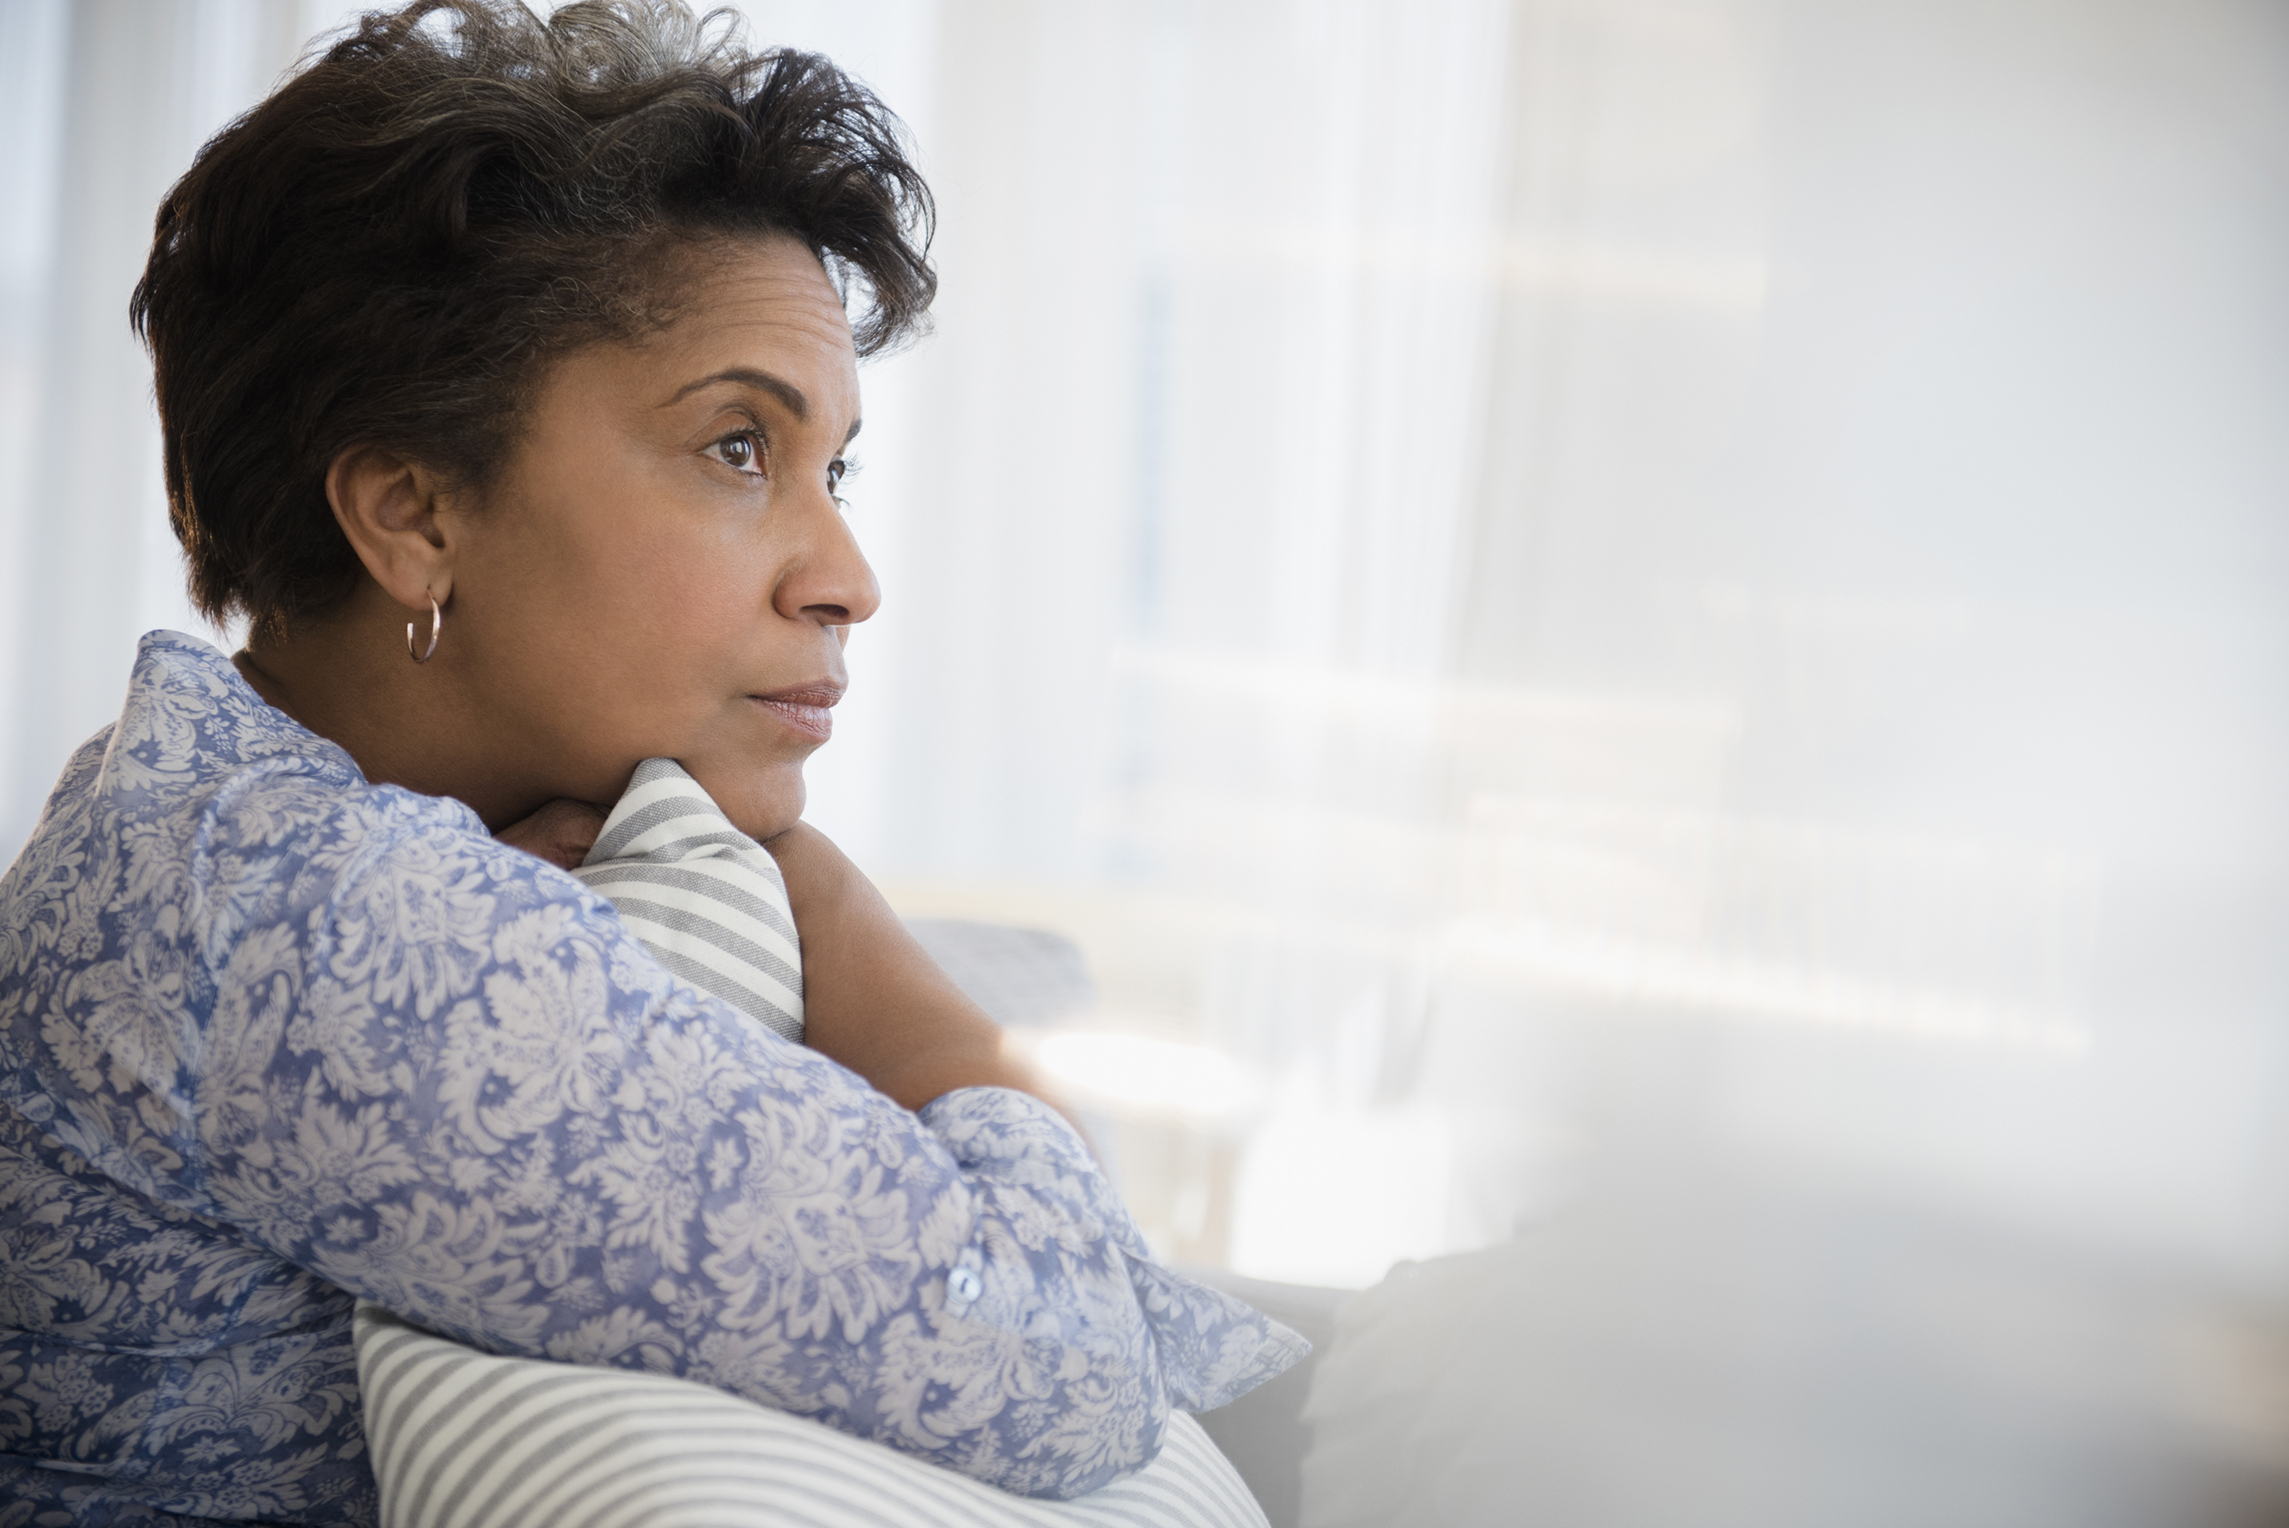 Pensive older Black woman clutching pillow